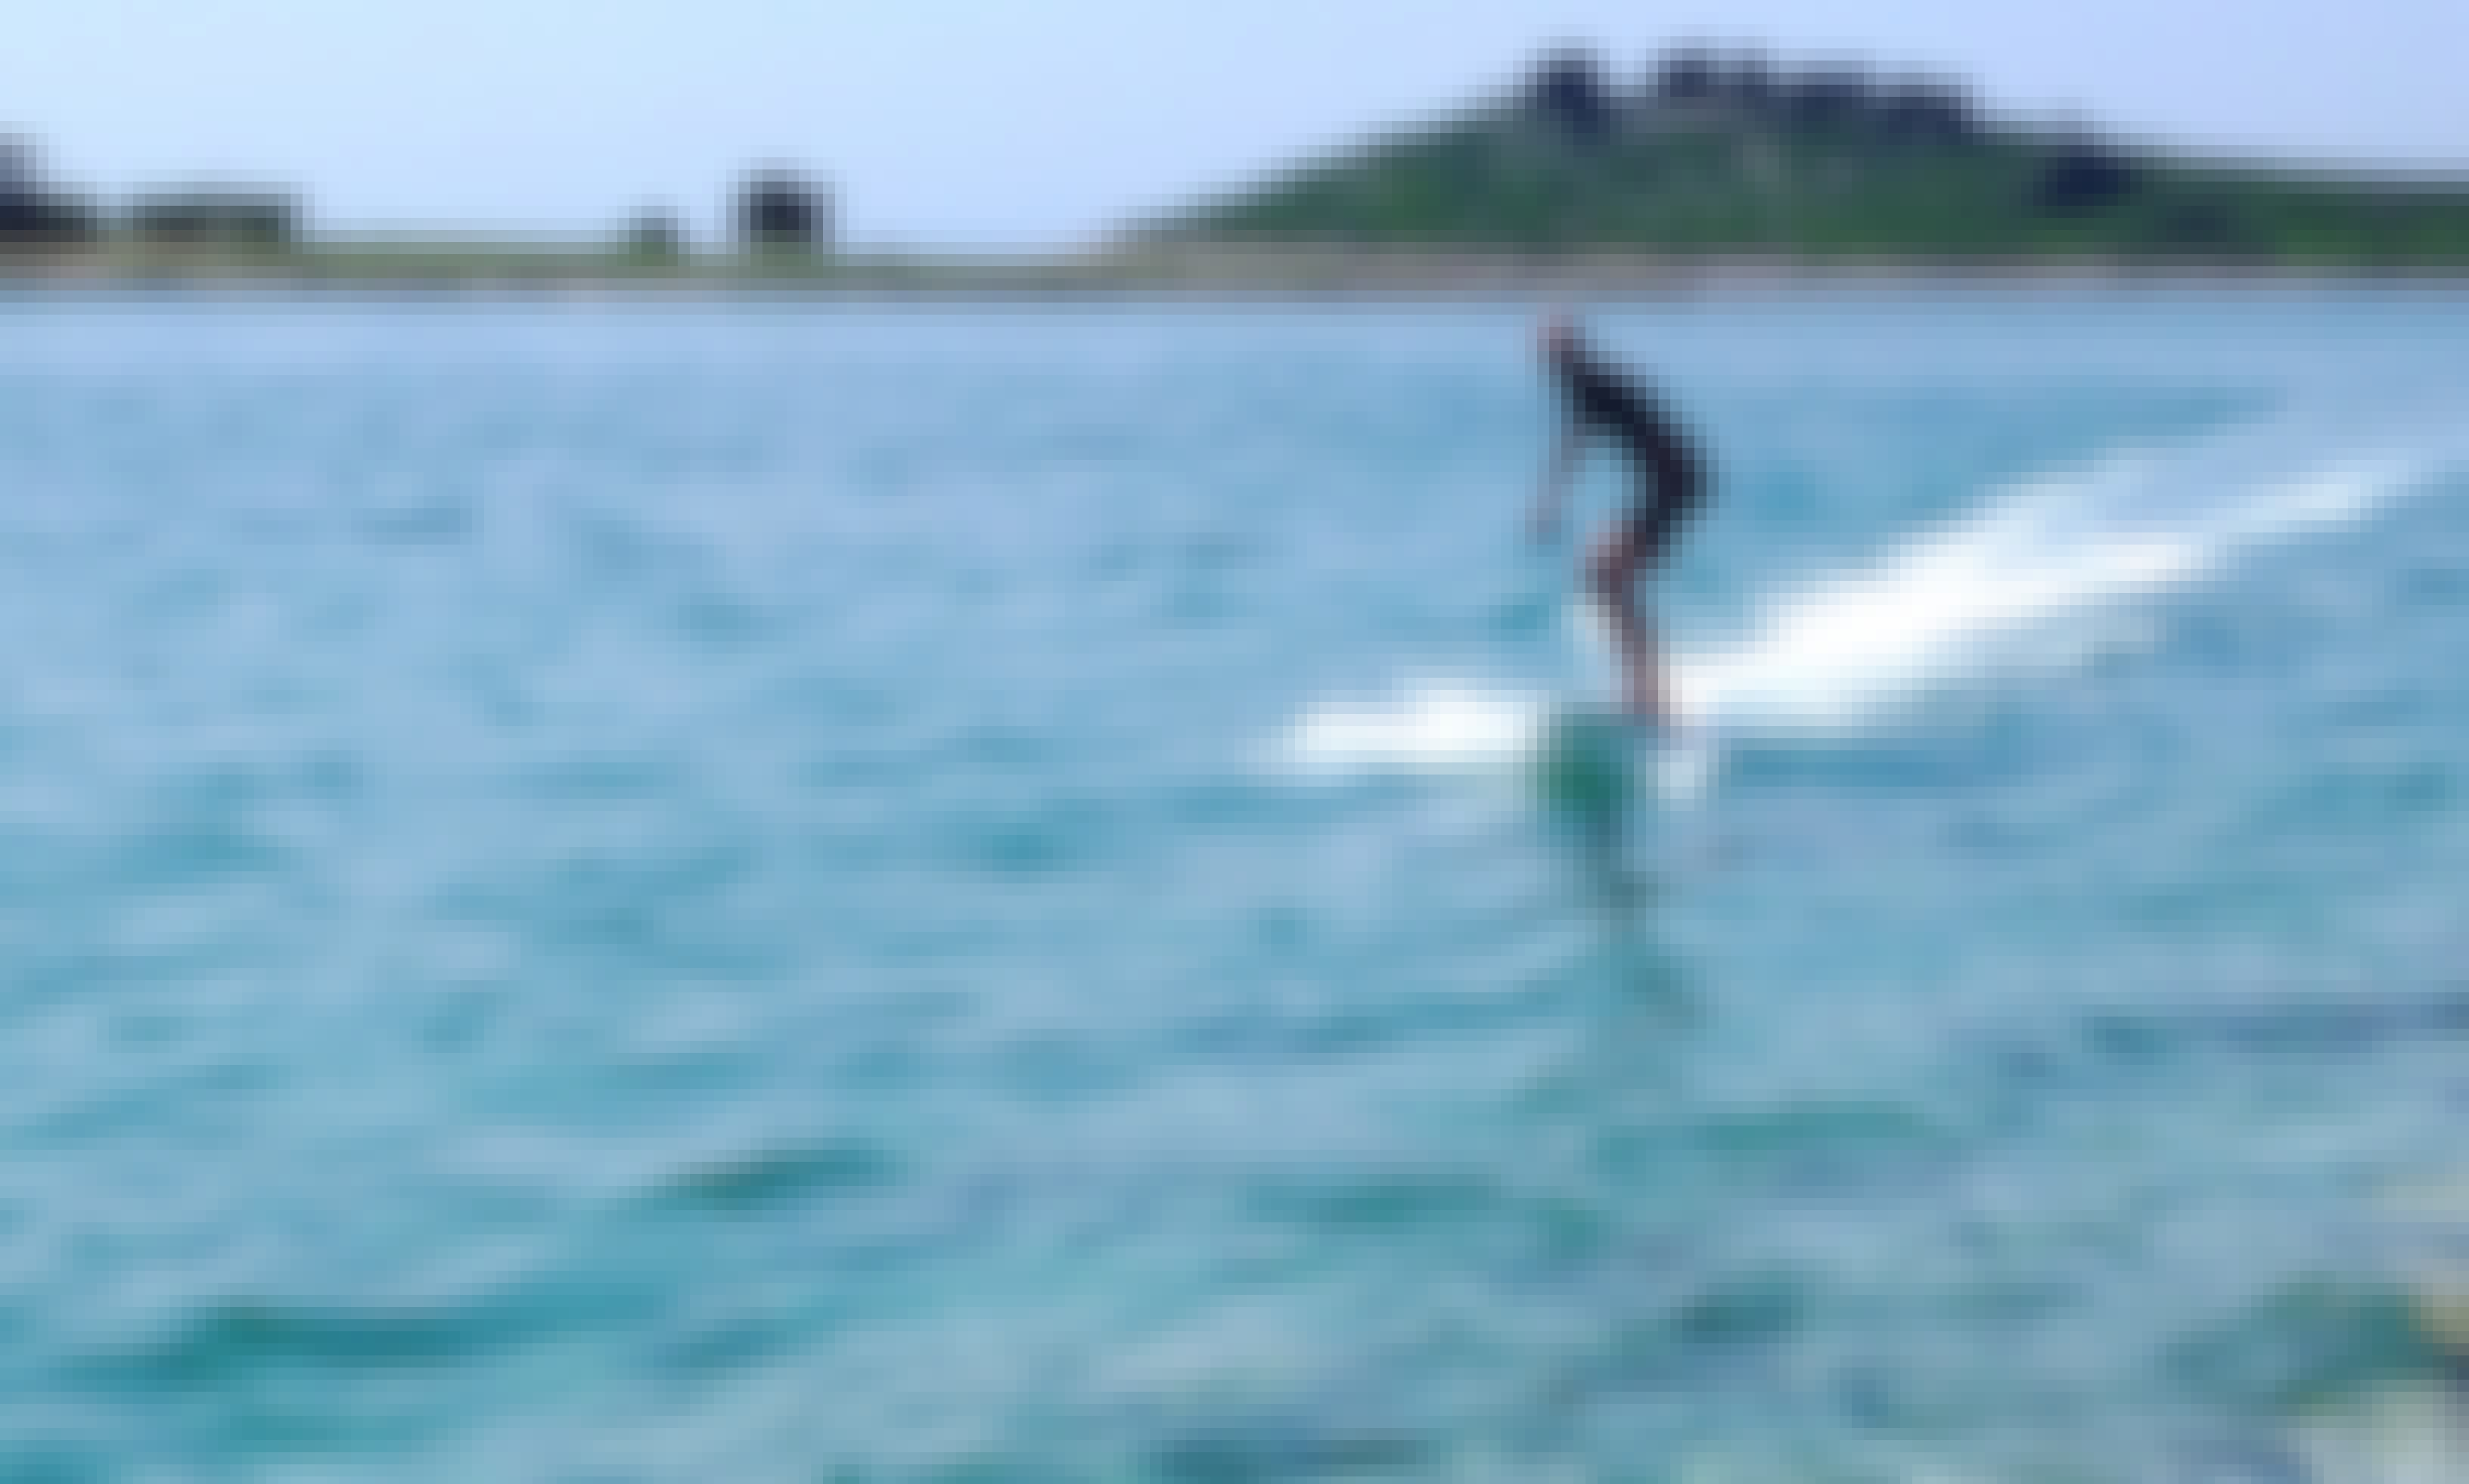 Electric surfboard for rent in Murter, Croatia (SURFER by Poletusa)